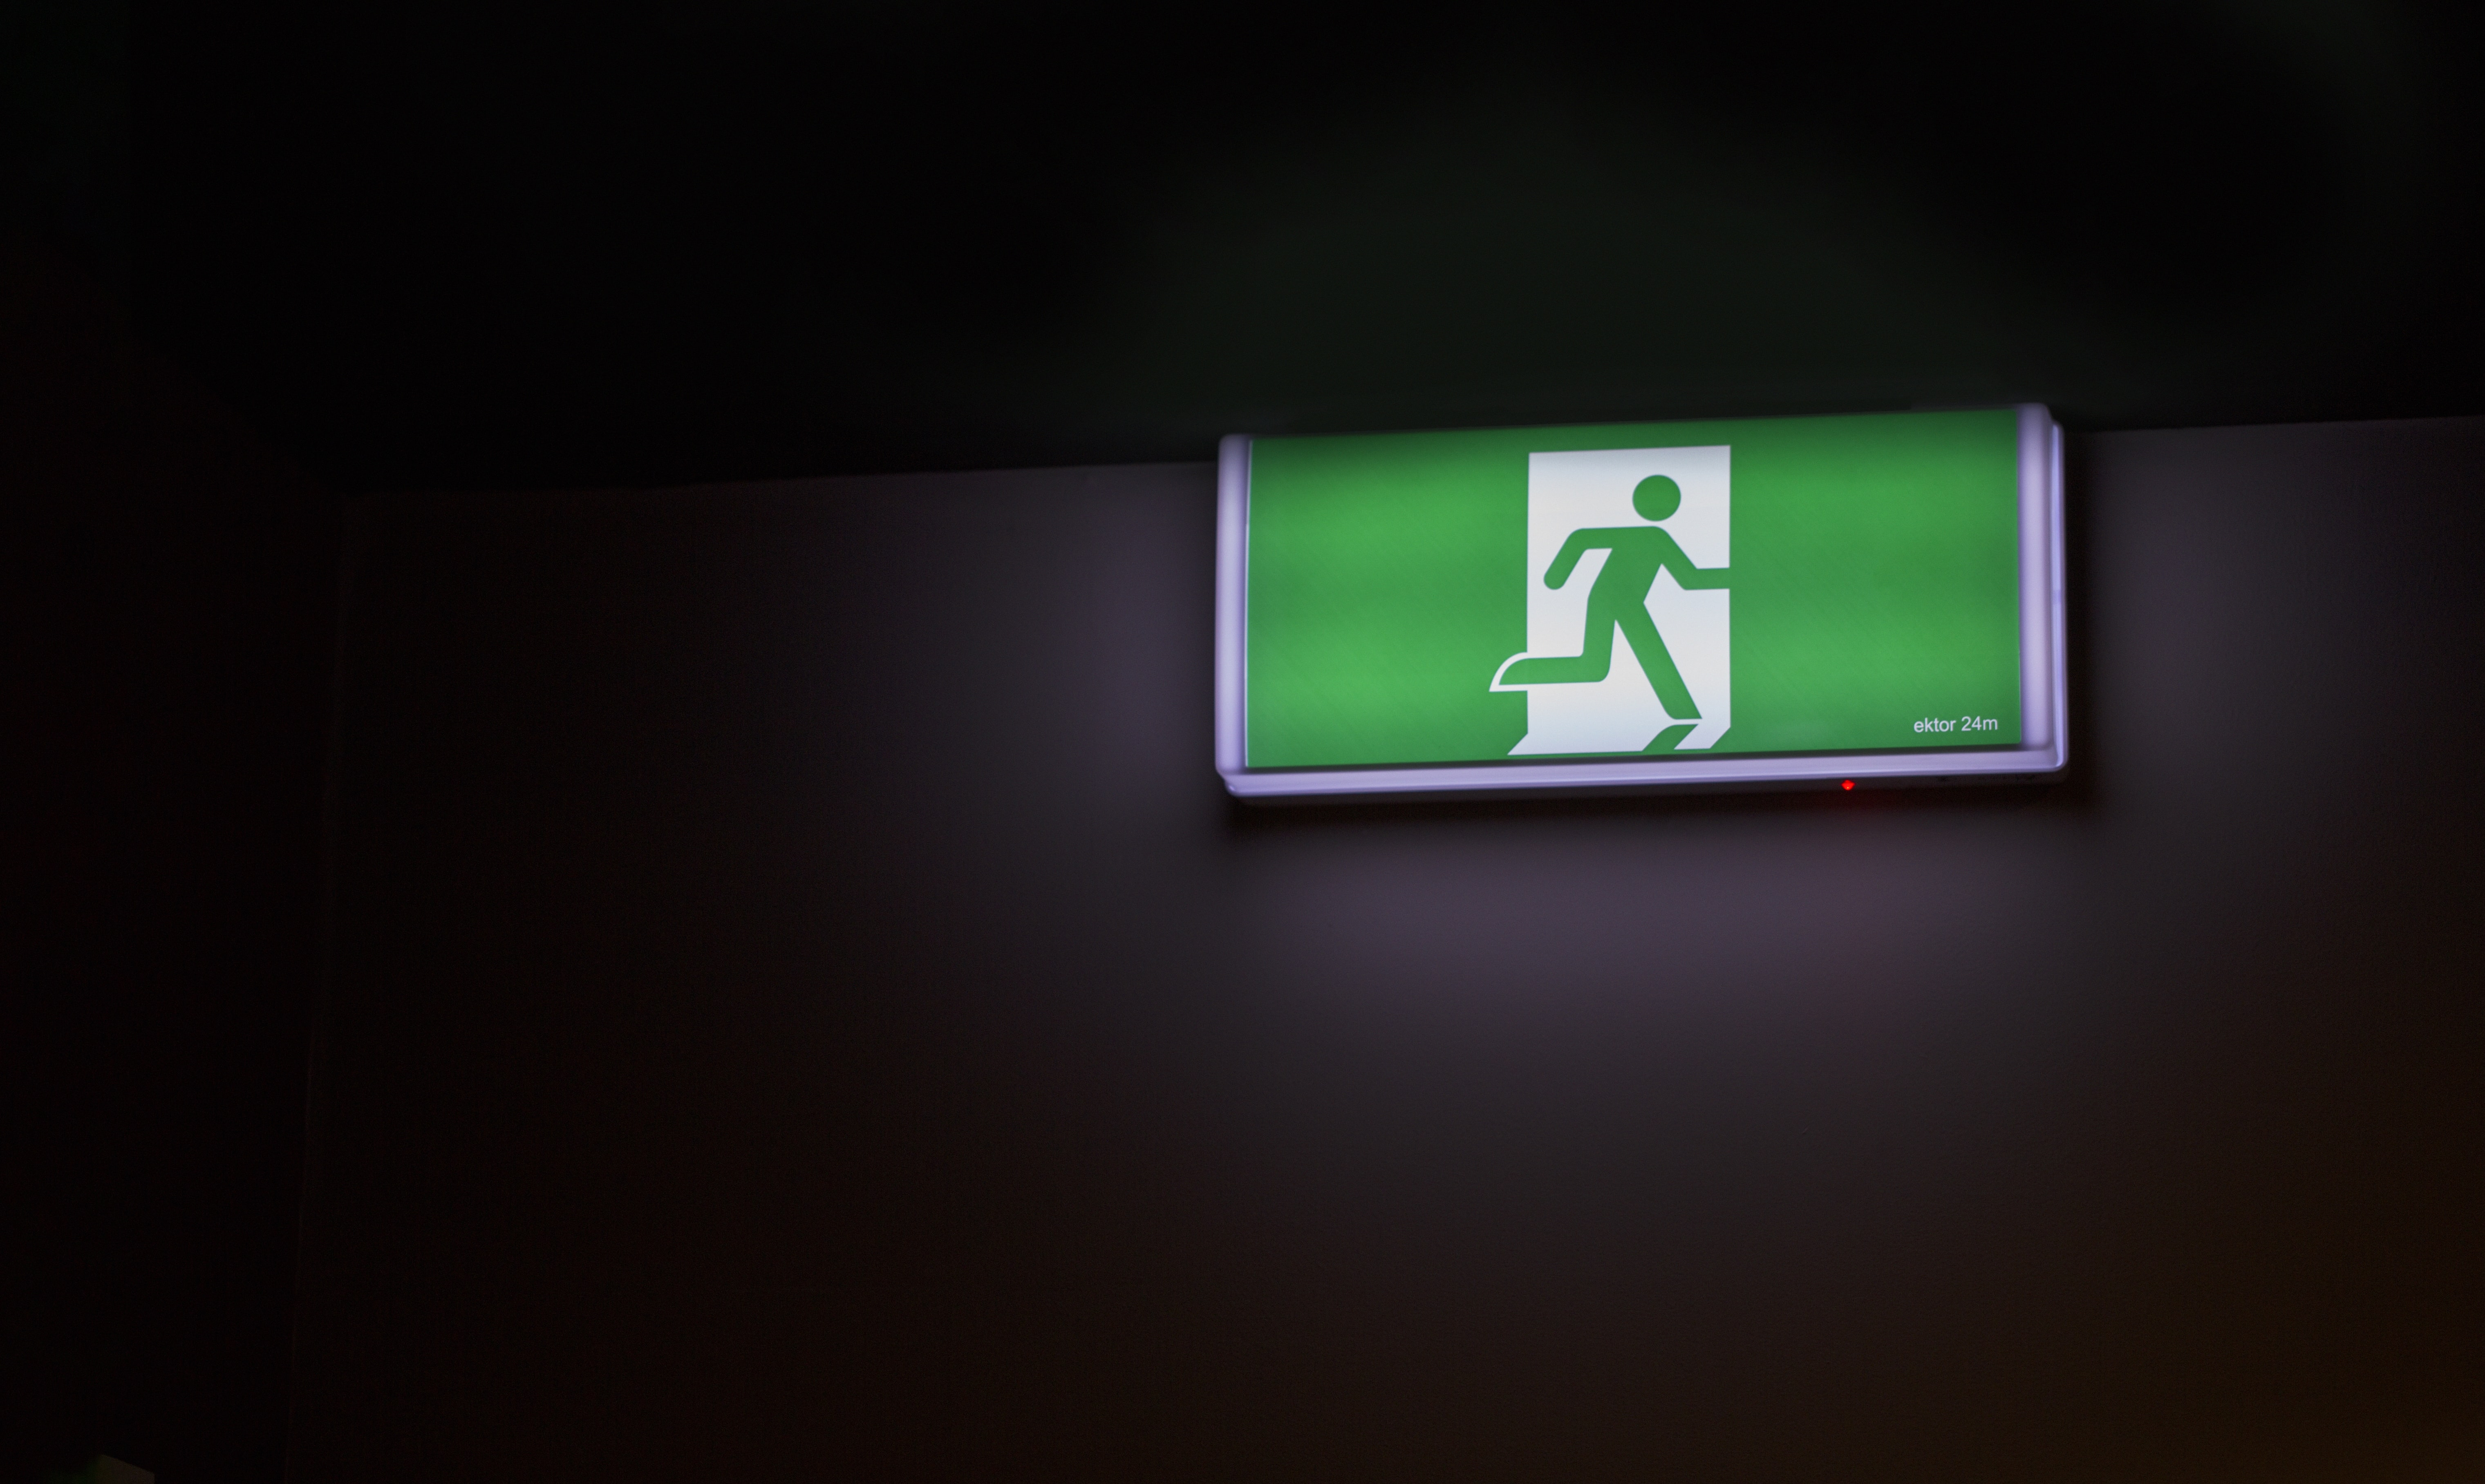 Green exit sign with figure of a person exiting through a door against a black background